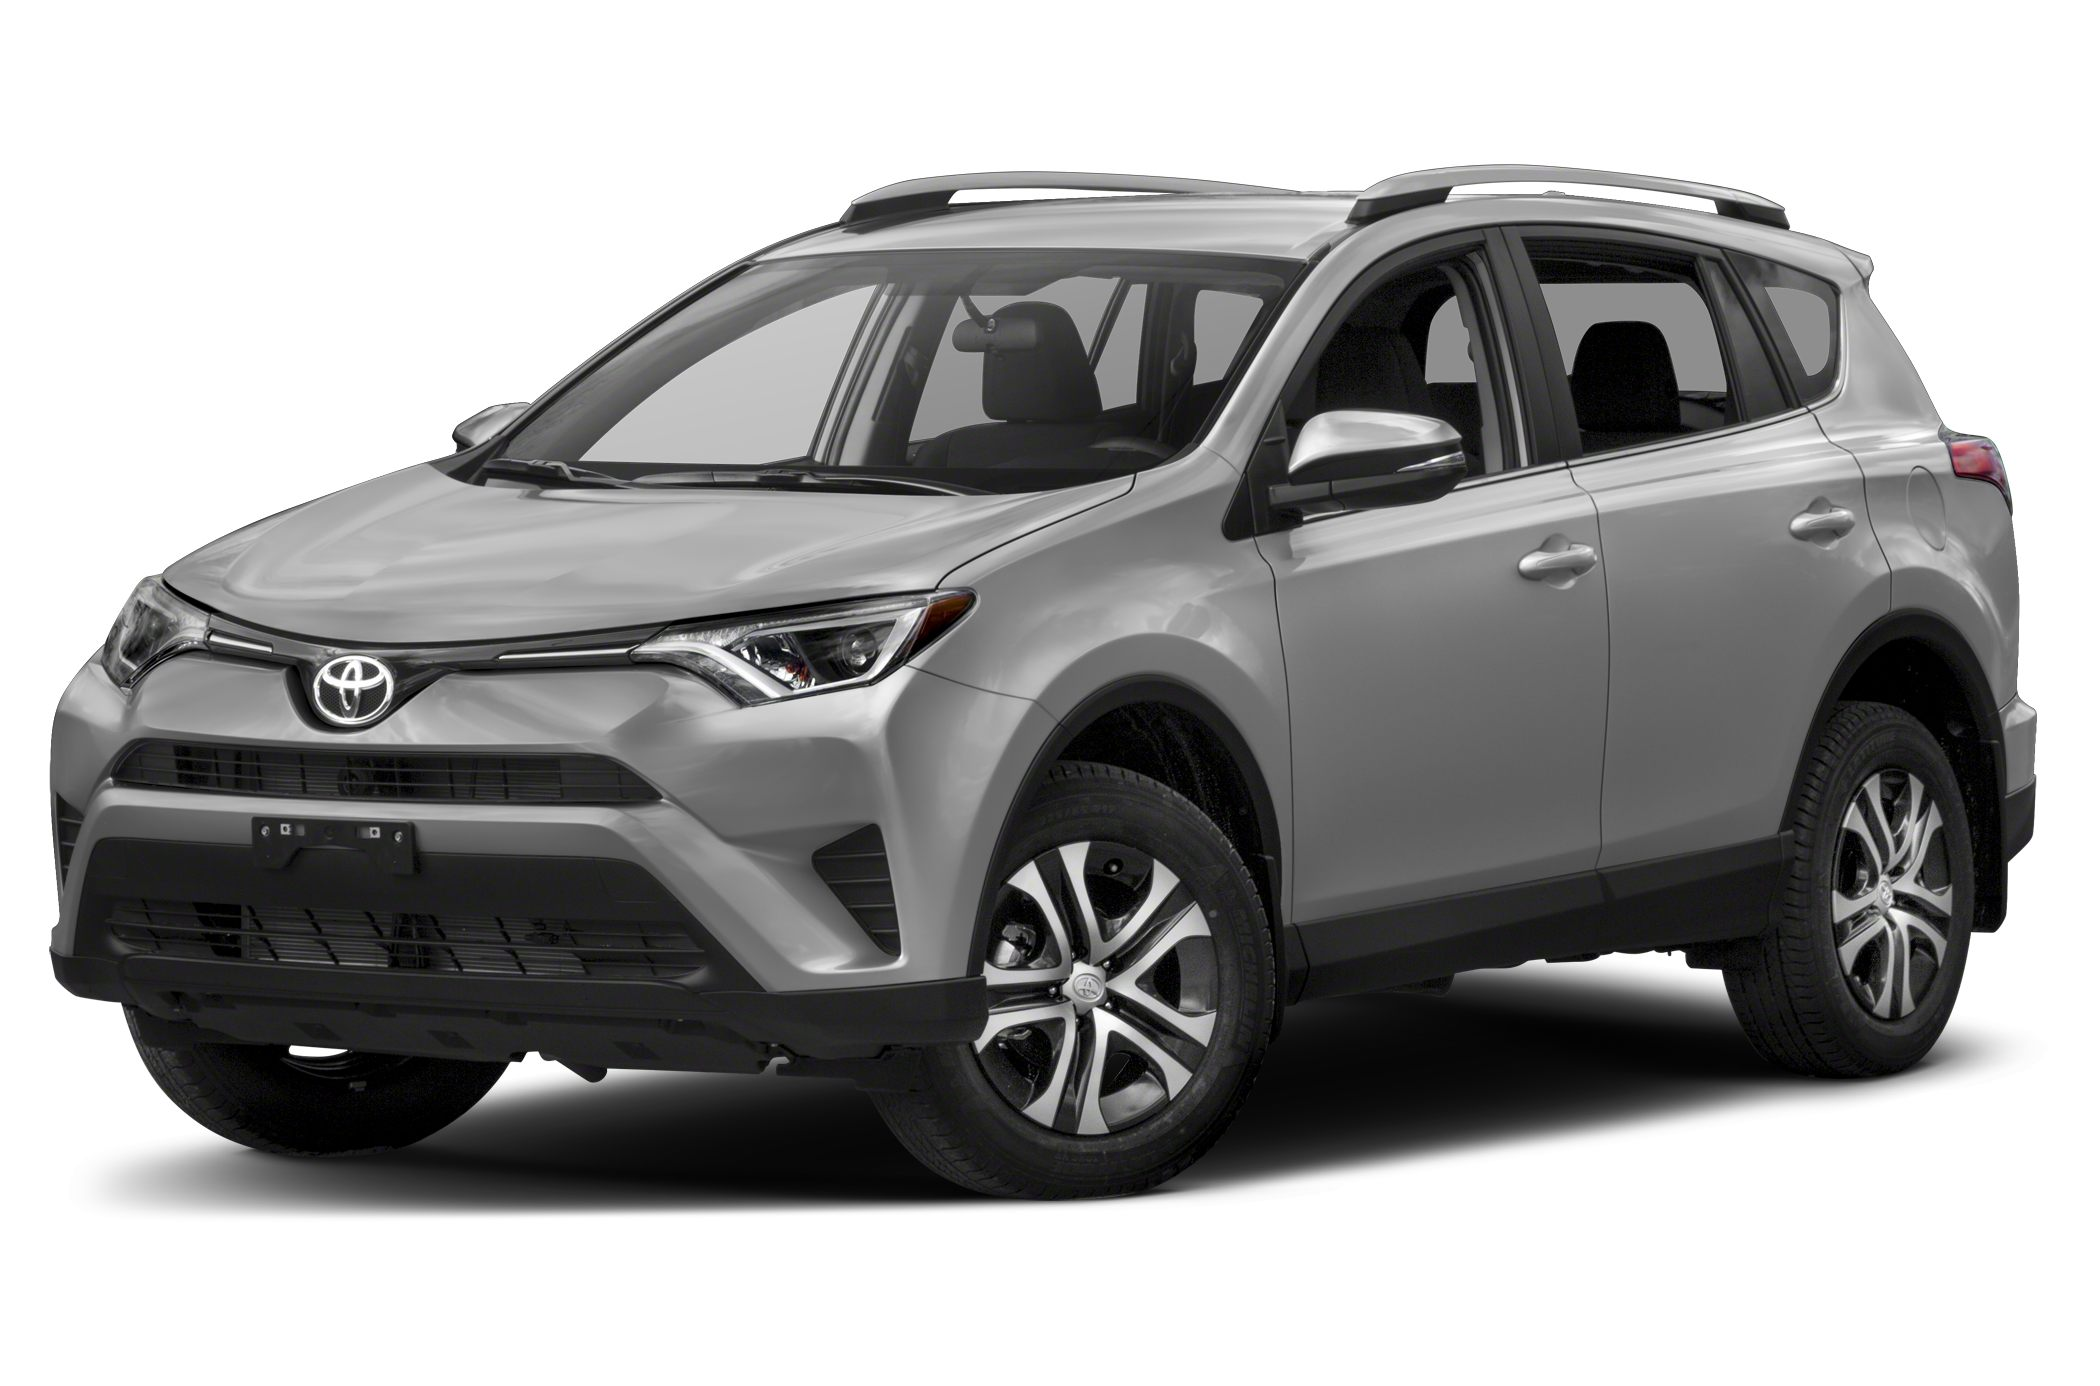 2016 Toyota Rav4 Photos